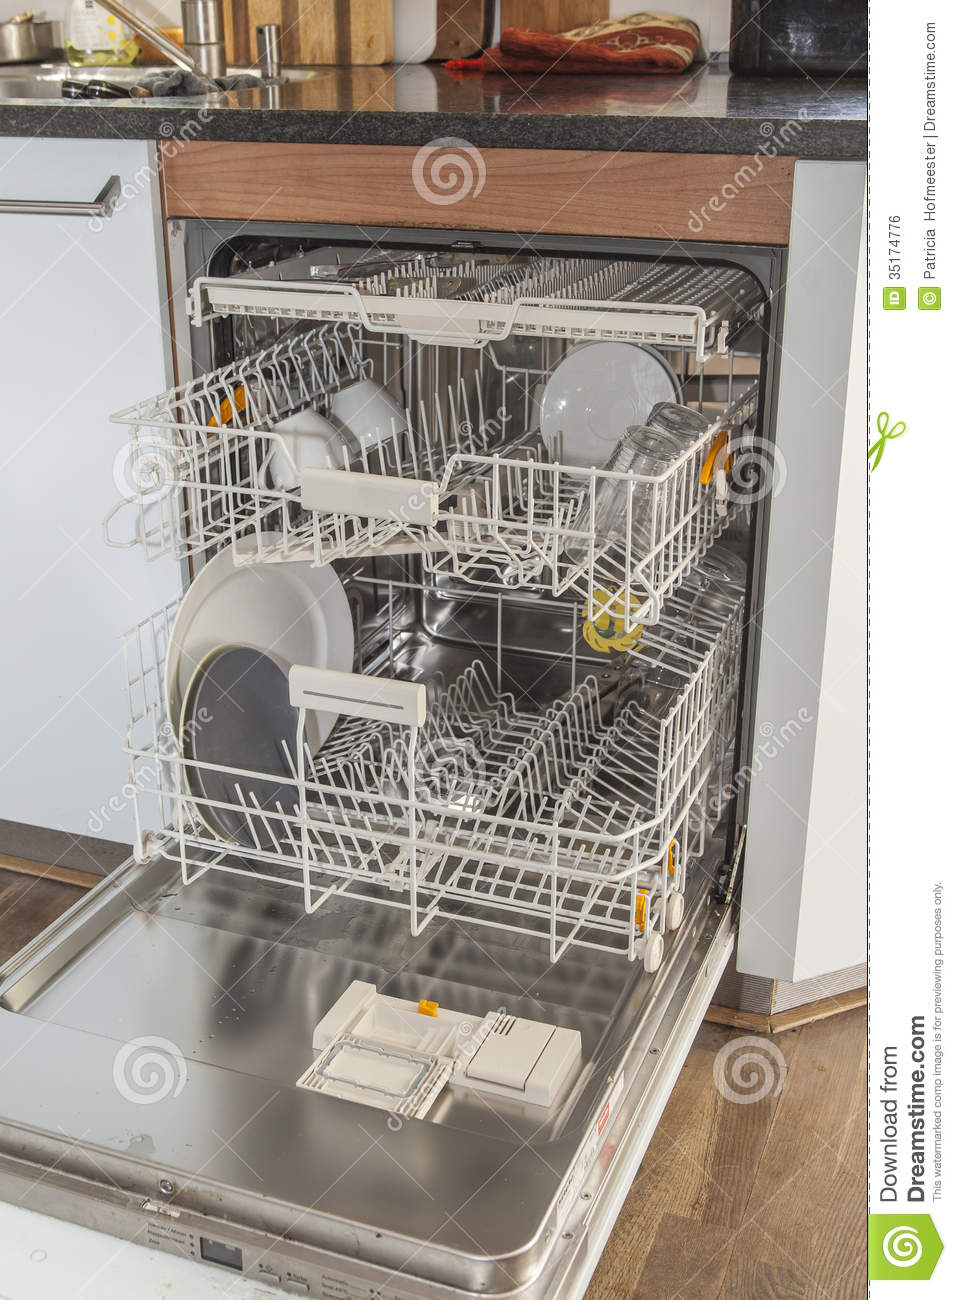 Open Dishwasher In Kitchen Royalty Free Stock Image   Image  35174776